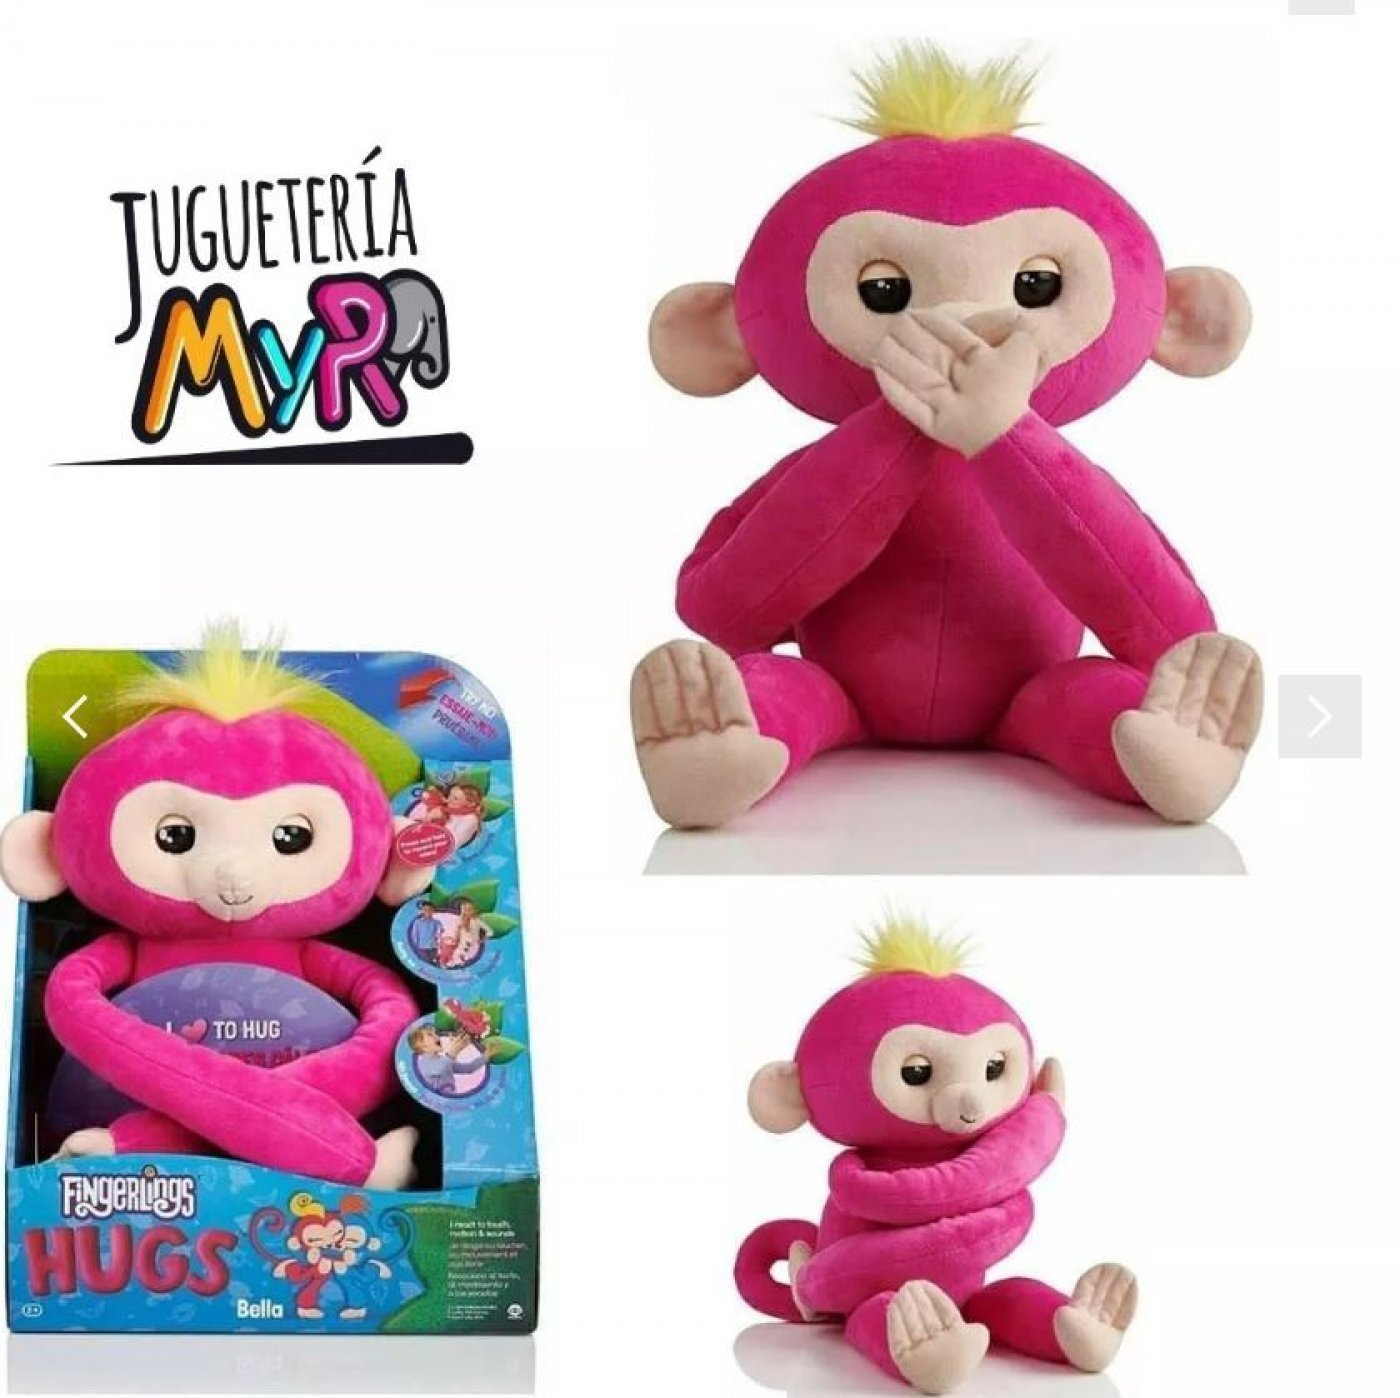 Peluche Fingerlings Hugs Interactivo 50cm Sonidos Reales